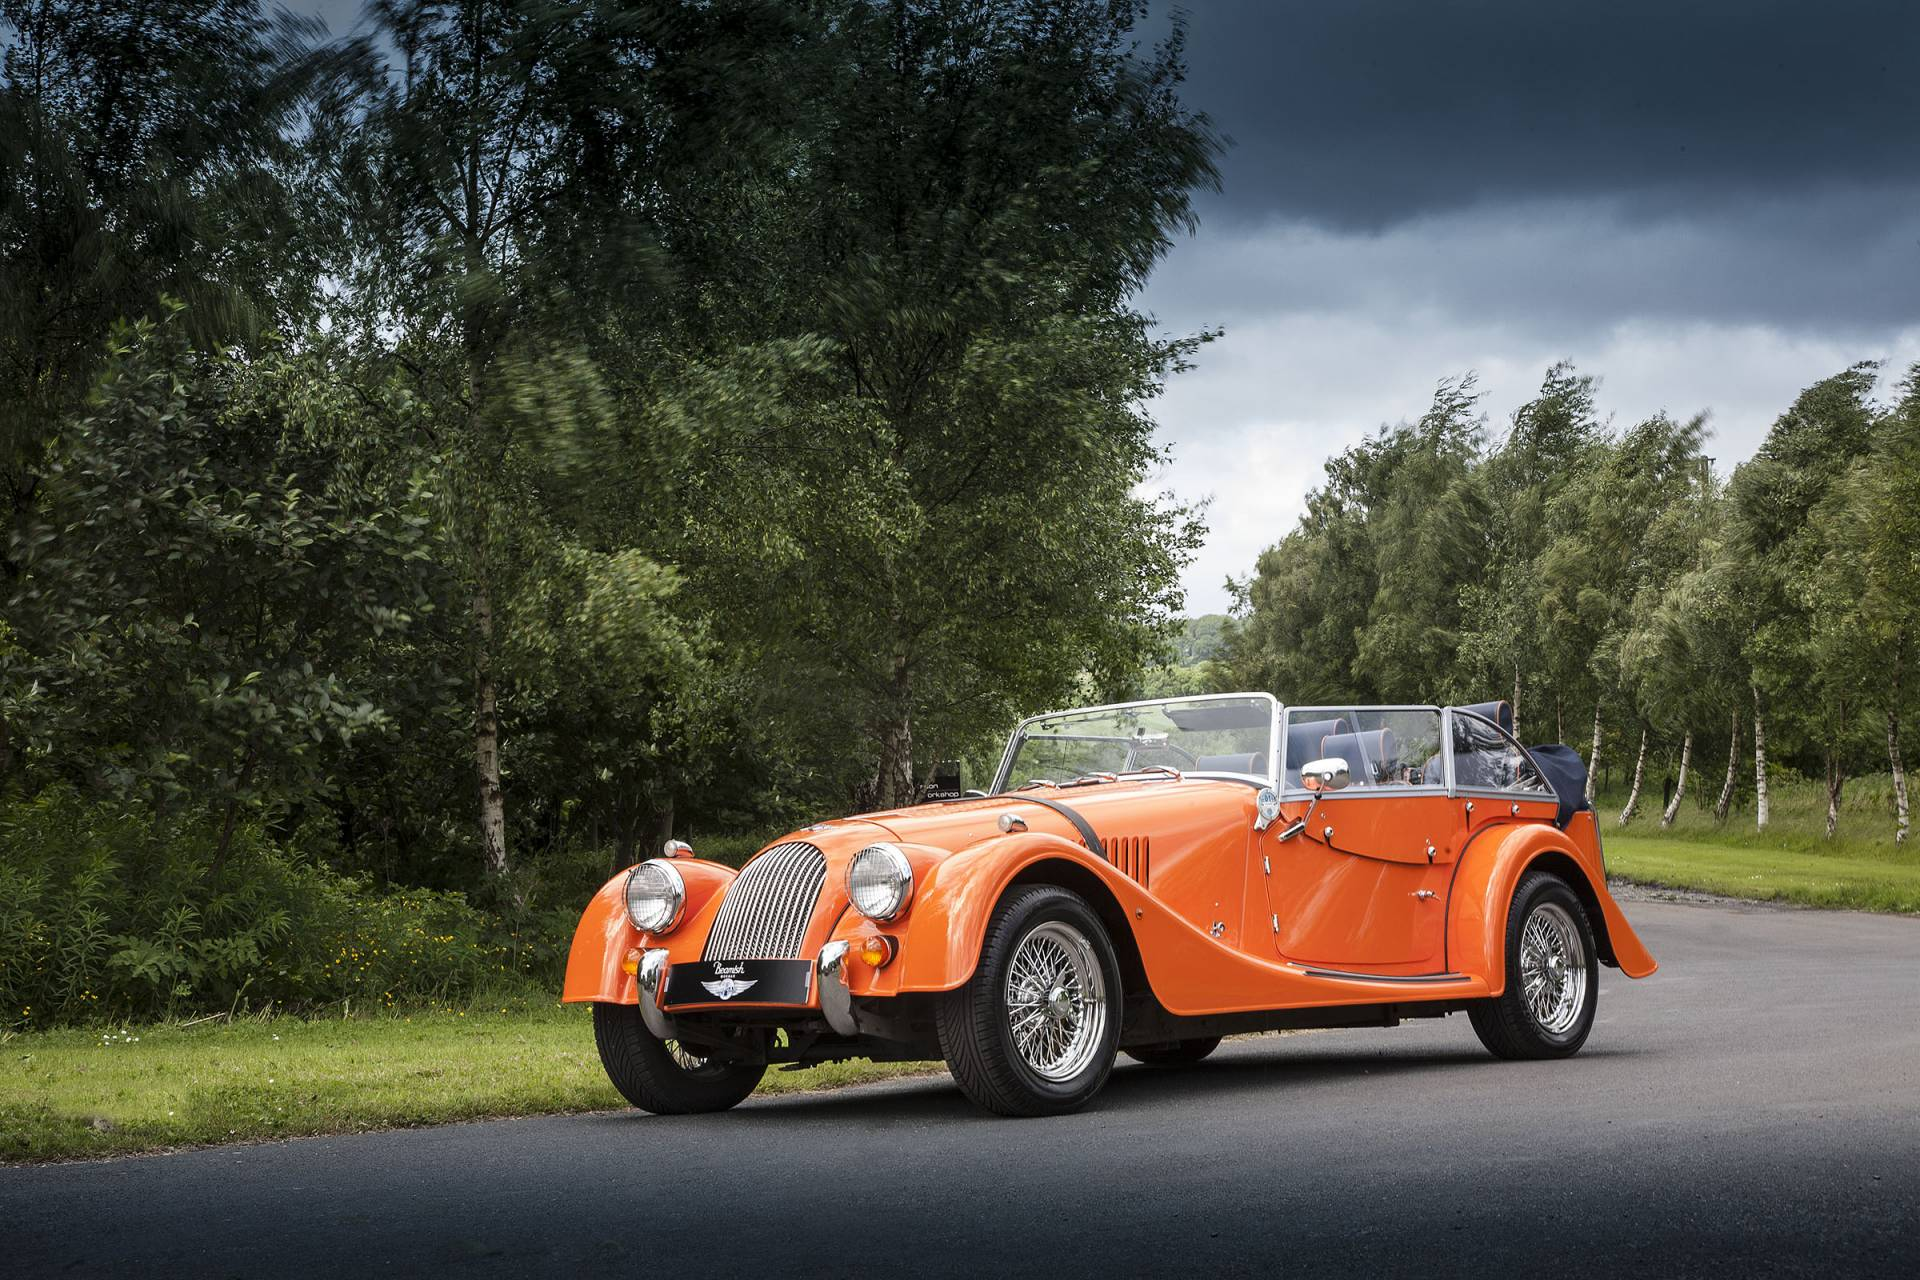 Morgan Plus 4 4-seater